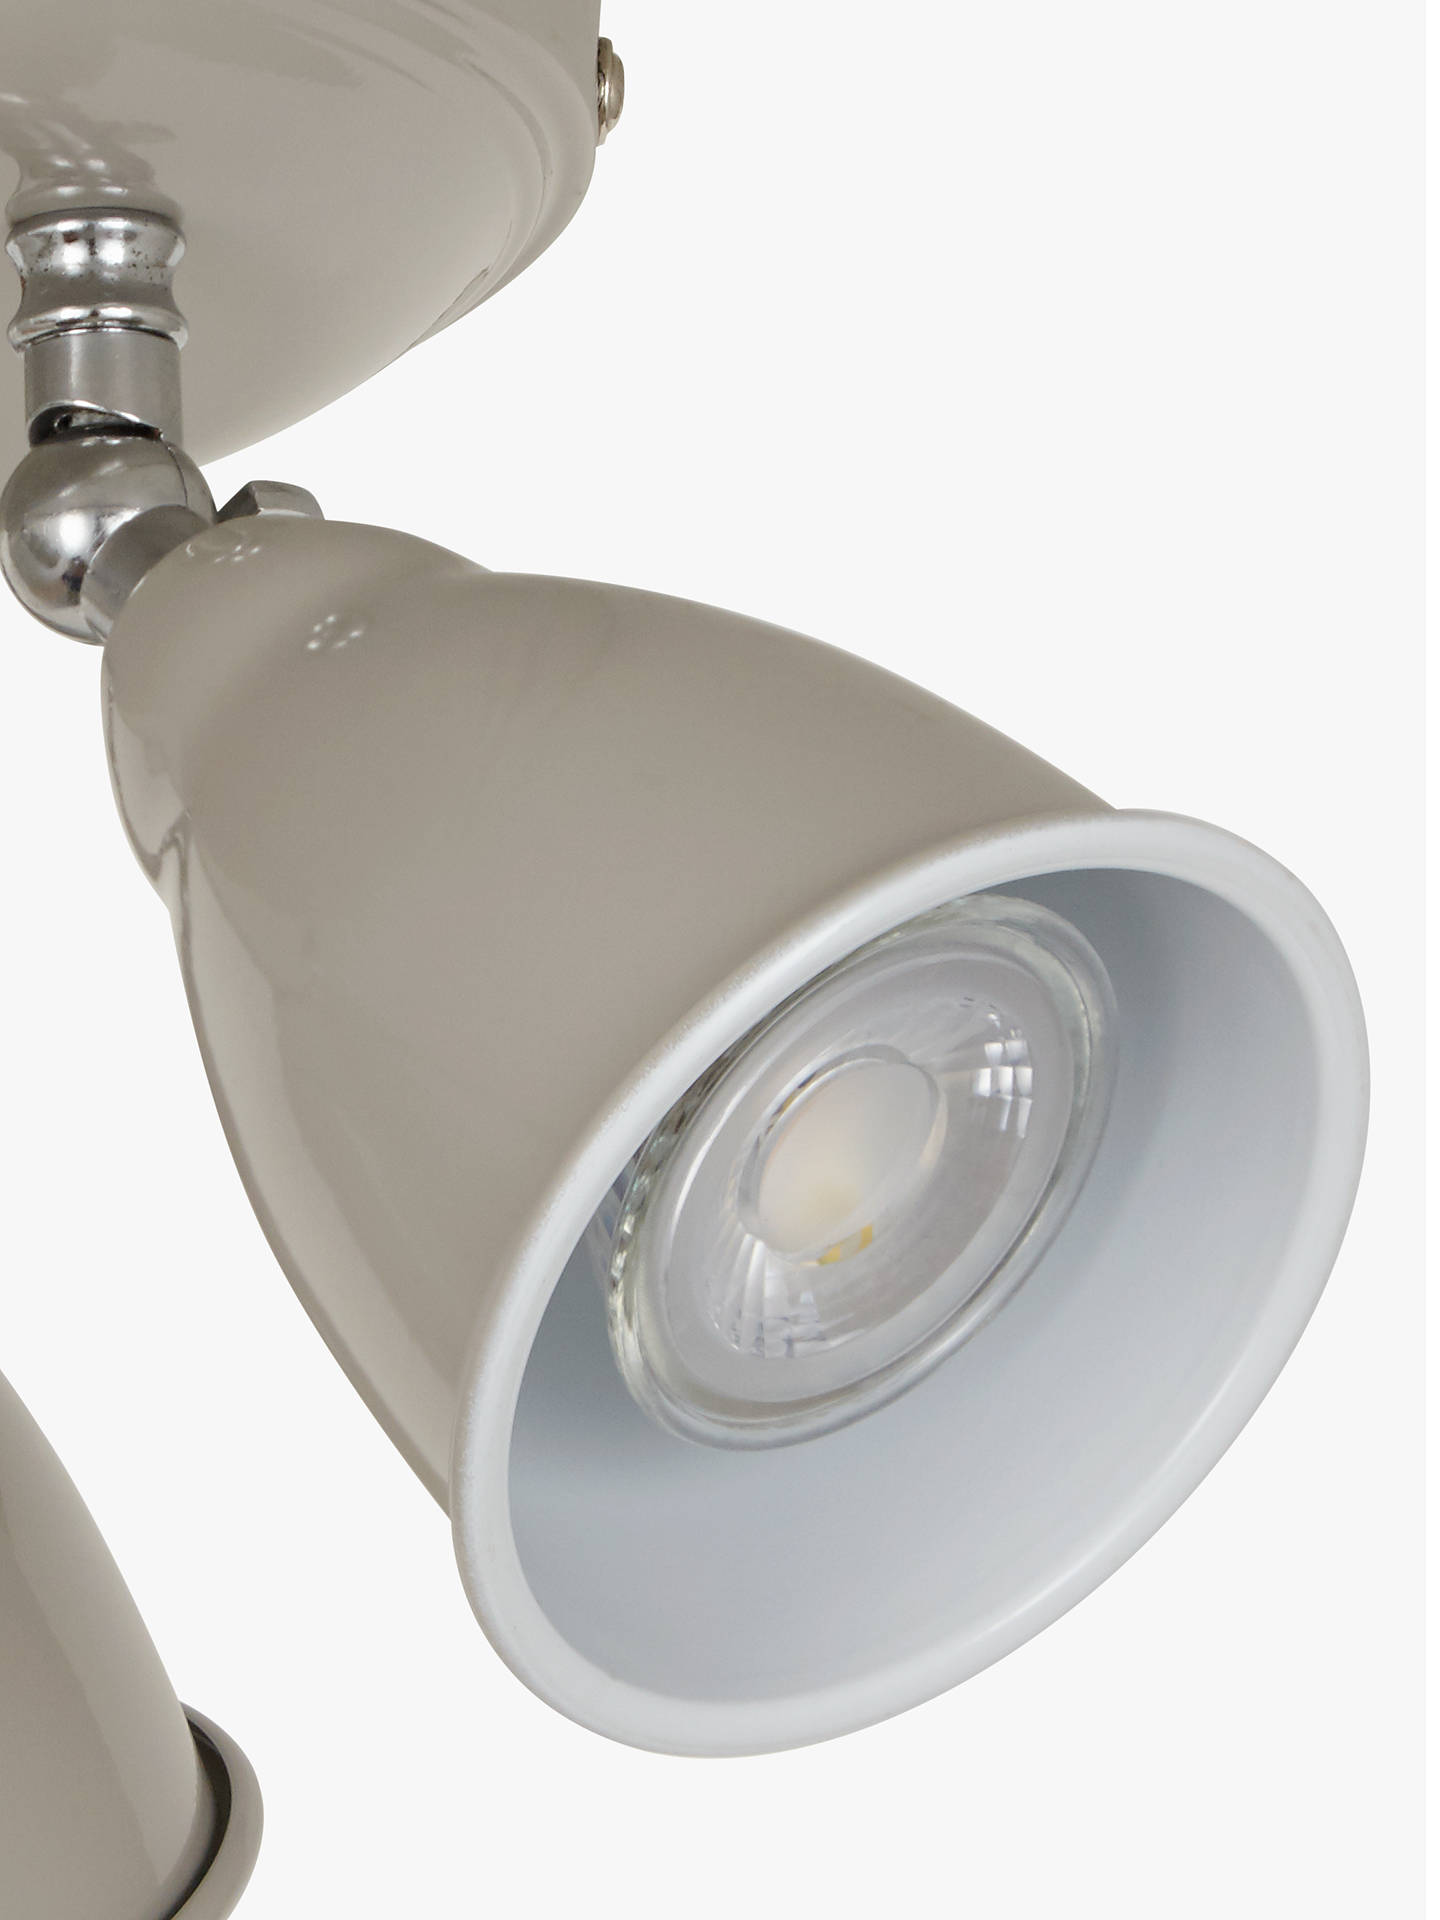 BuyJohn Lewis & Partners Plymouth GU10 LED 3 Spotlight Ceiling Plate, Taupe Online at johnlewis.com